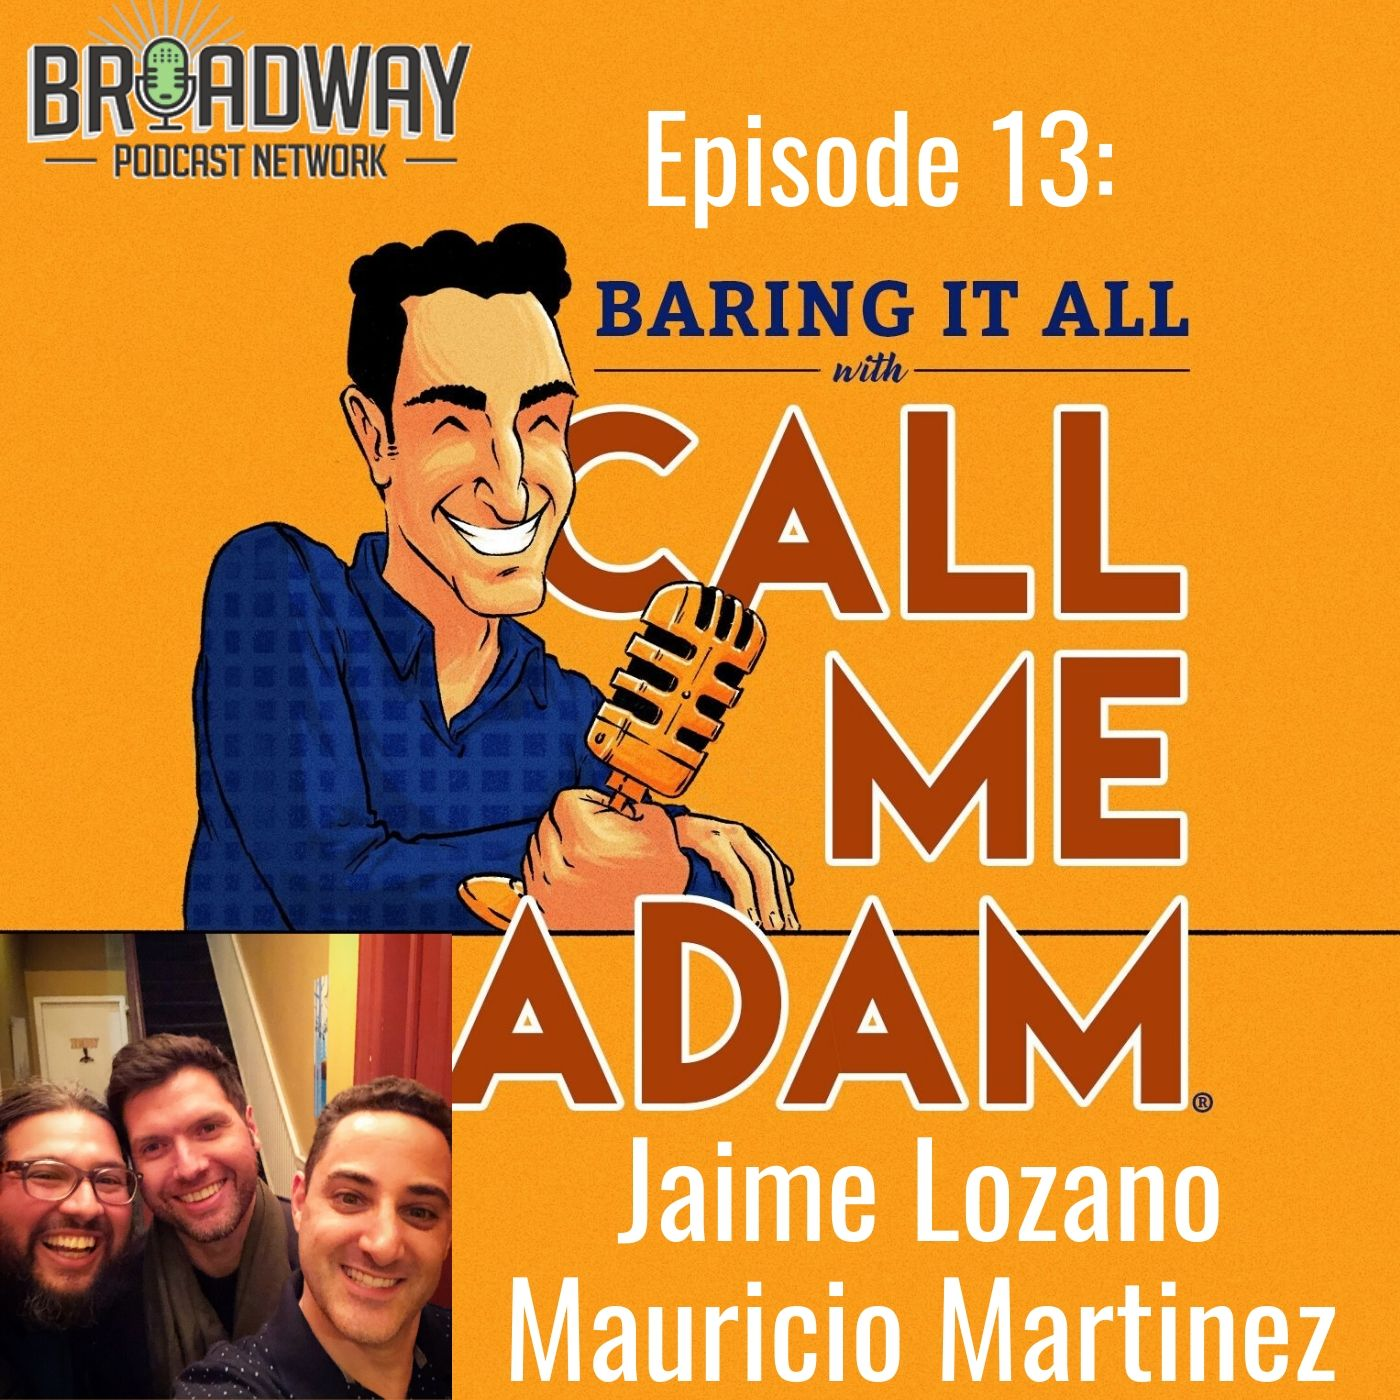 Baring It All With Call Me Adam Ep 13 Jaime Lozano _ Mauricio Martinez